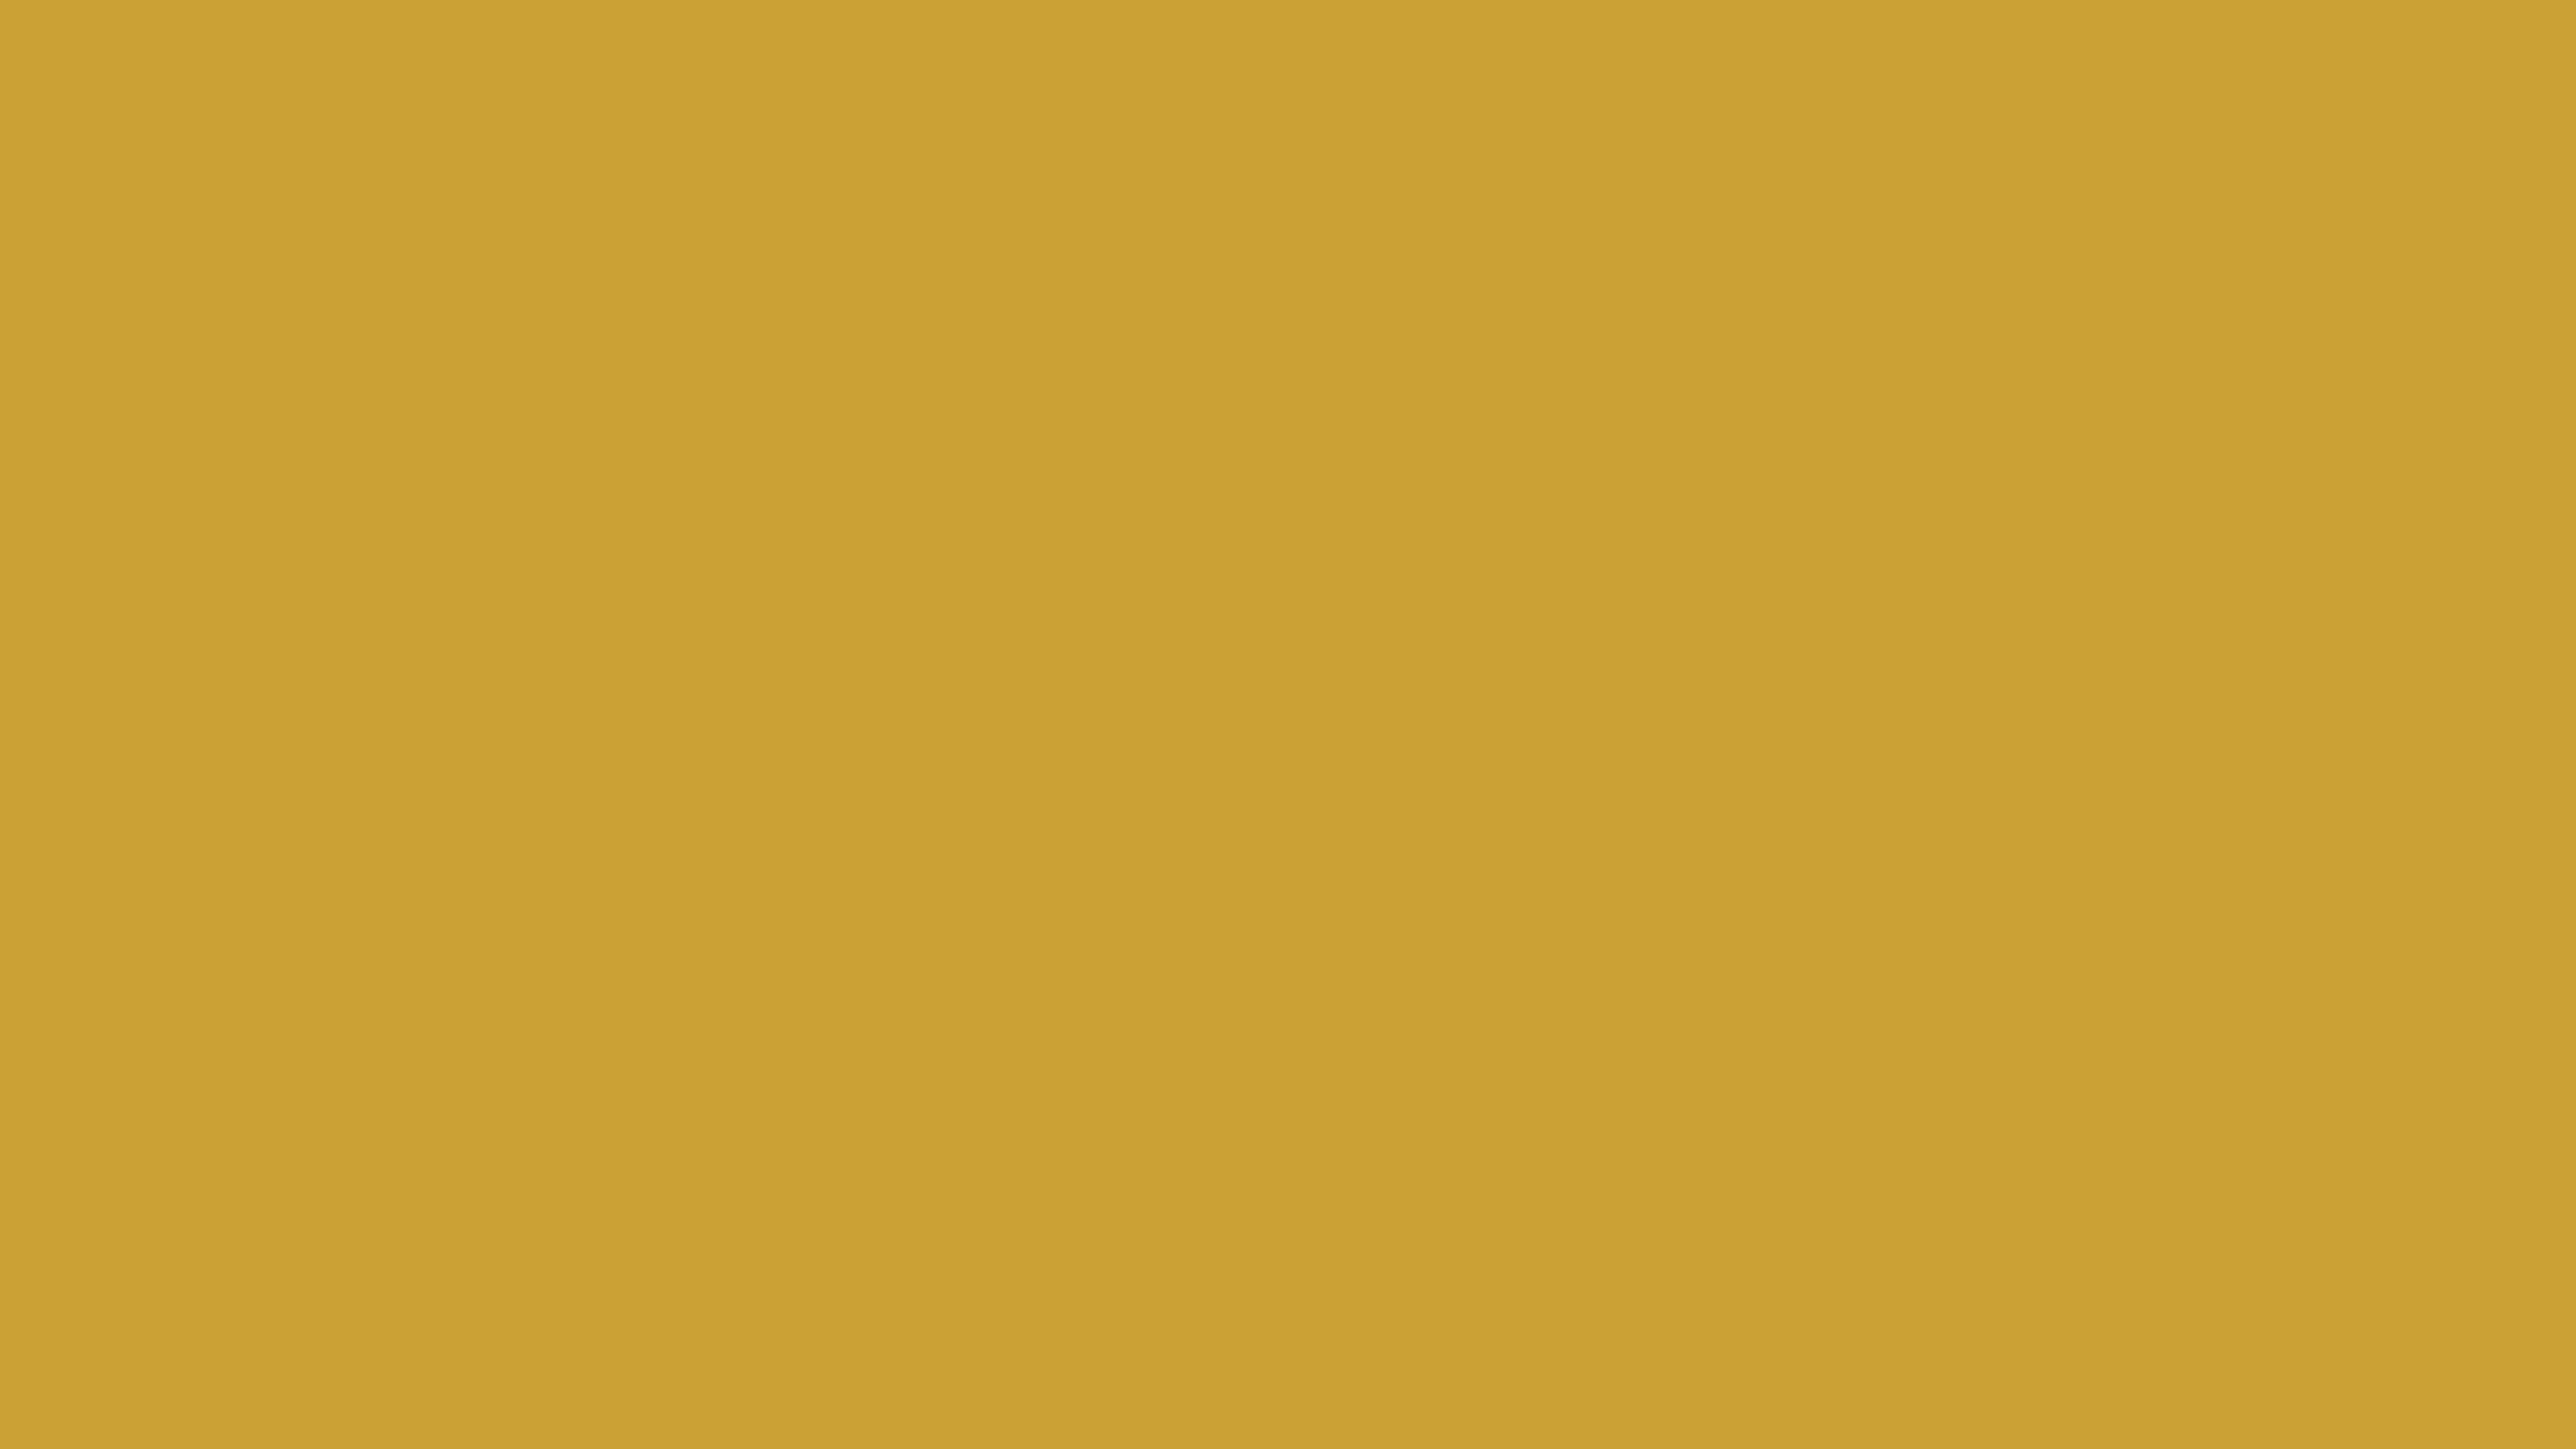 3840x2160 Satin Sheen Gold Solid Color Background